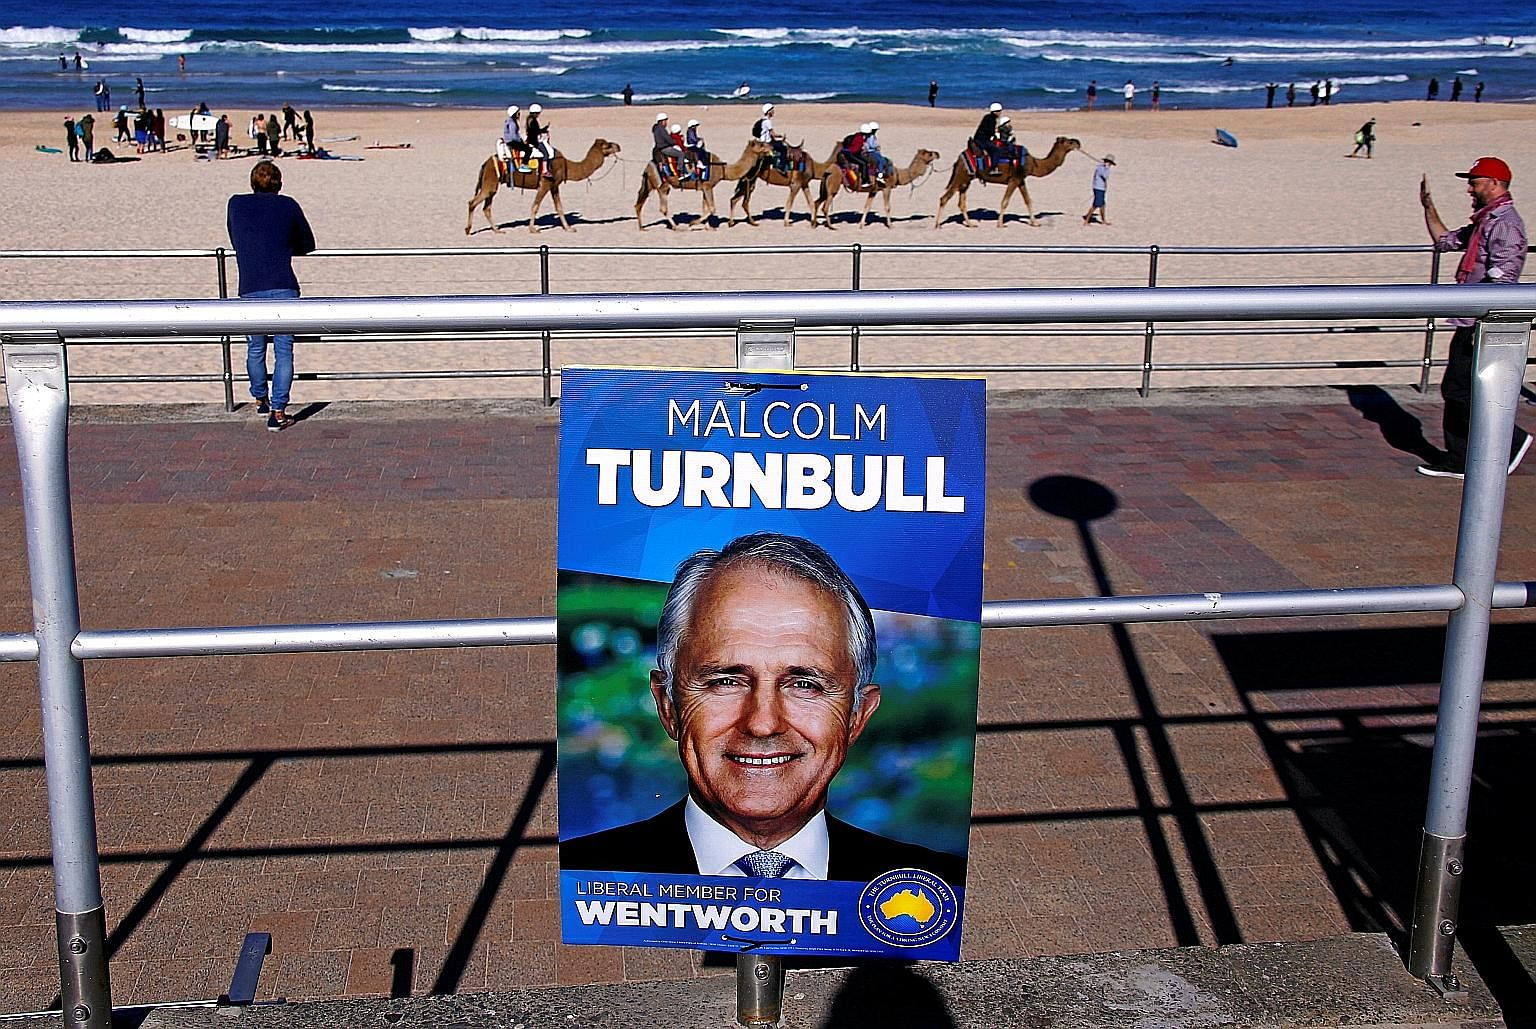 An election campaign poster of Australian Prime Minister Malcolm Turnbull against a backdrop of tourists riding camels along Bondi Beach in Sydney. Commentators have criticised Mr Turnbull's campaign, which appeared to lack energy and relied on a som